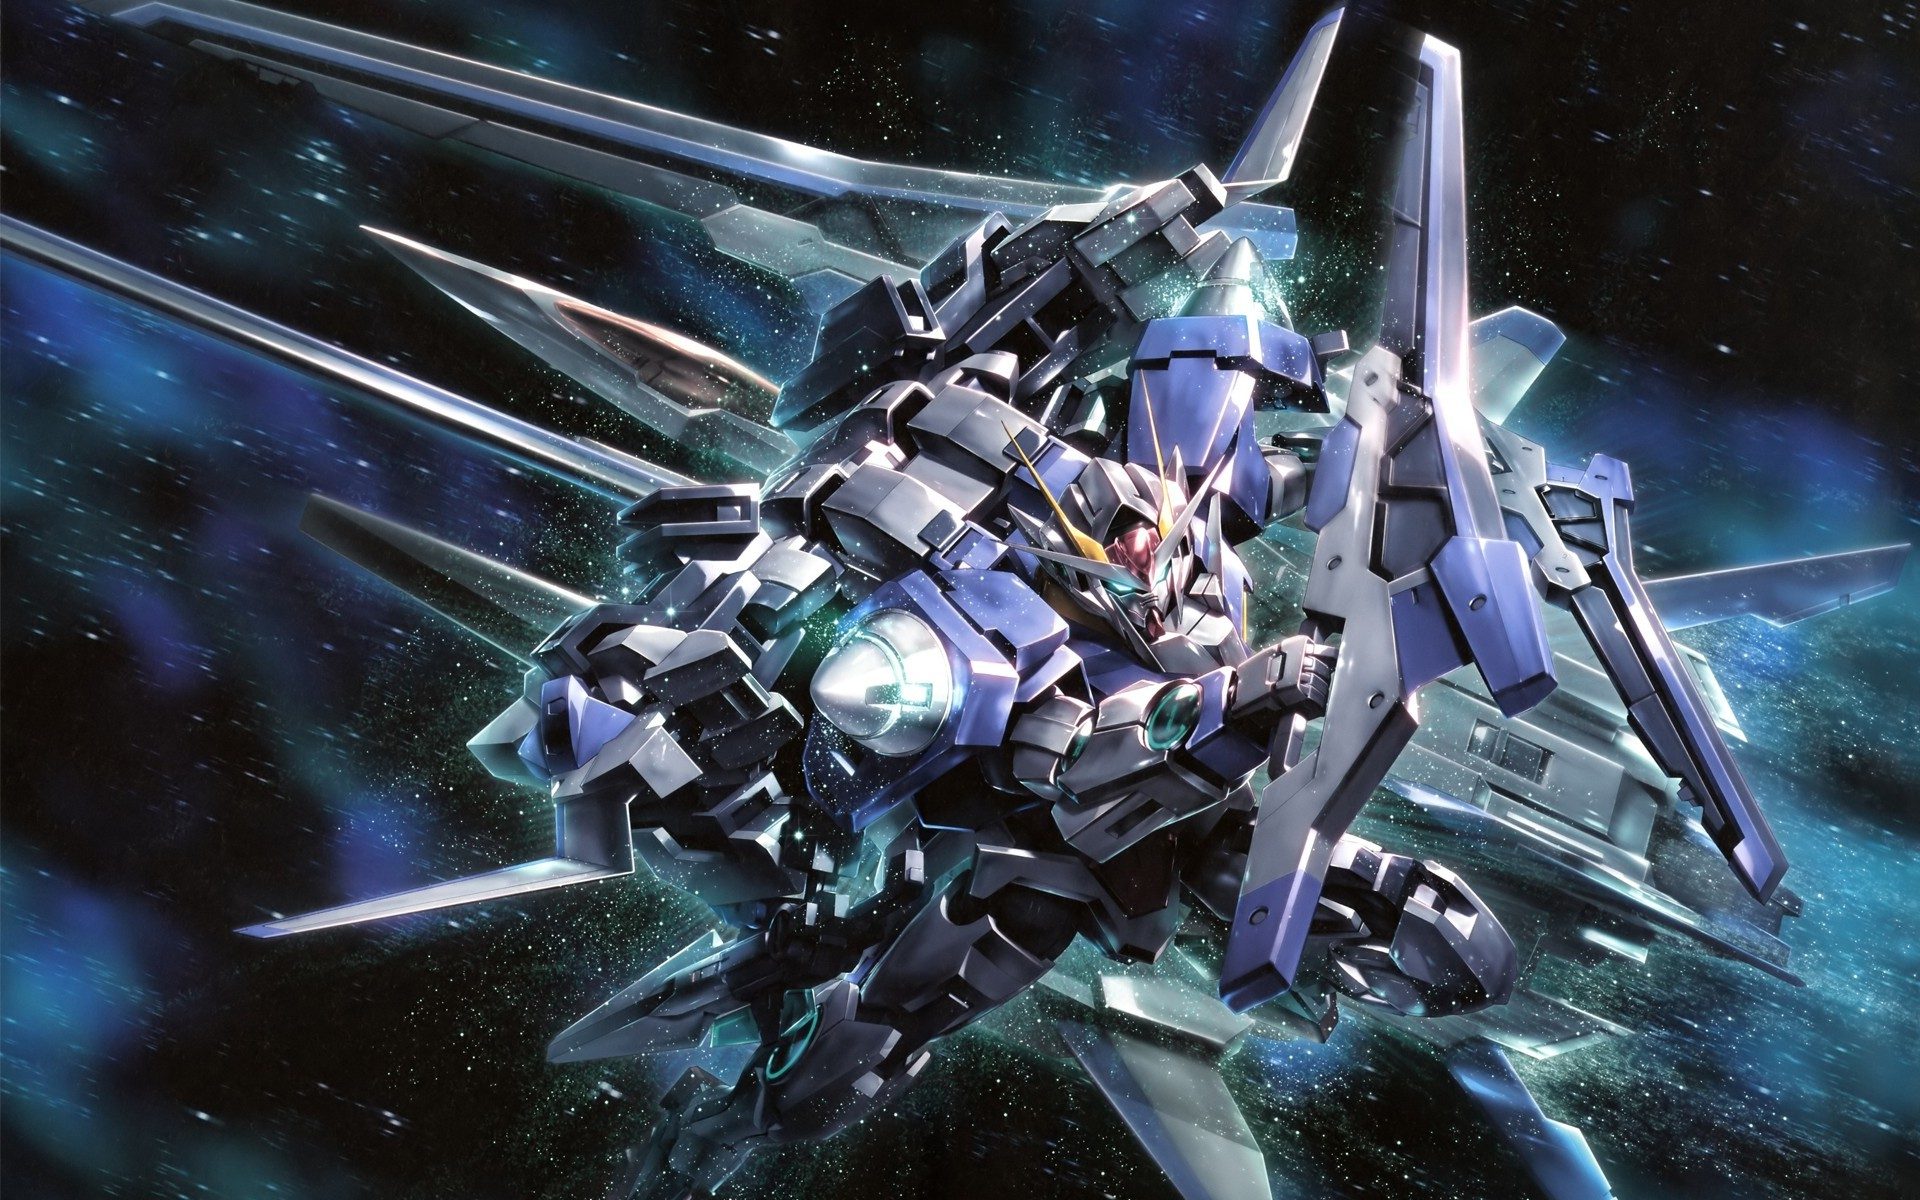 1920x1200 Mobile Suit Gundam 00, Anime, Space, Gundam, Mech, Robot Wallpapers HD /  Desktop and Mobile Backgrounds